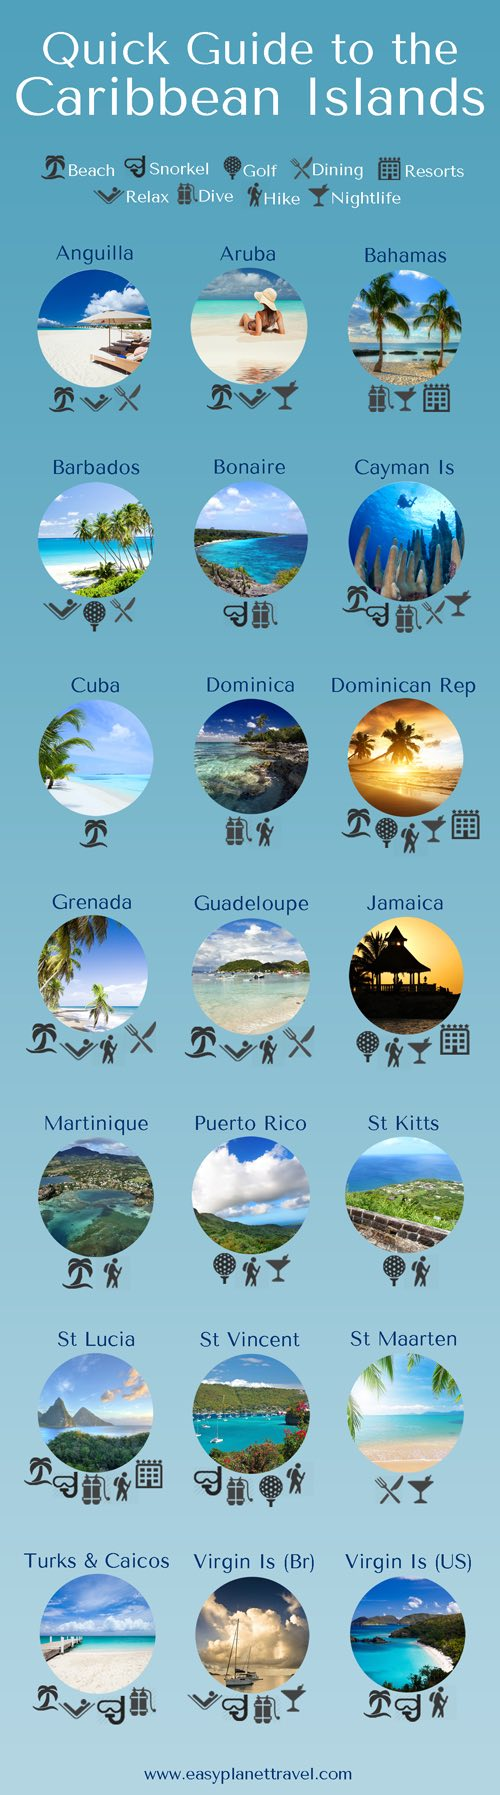 infographic_quick-guide-to-the-caribbean-island-small